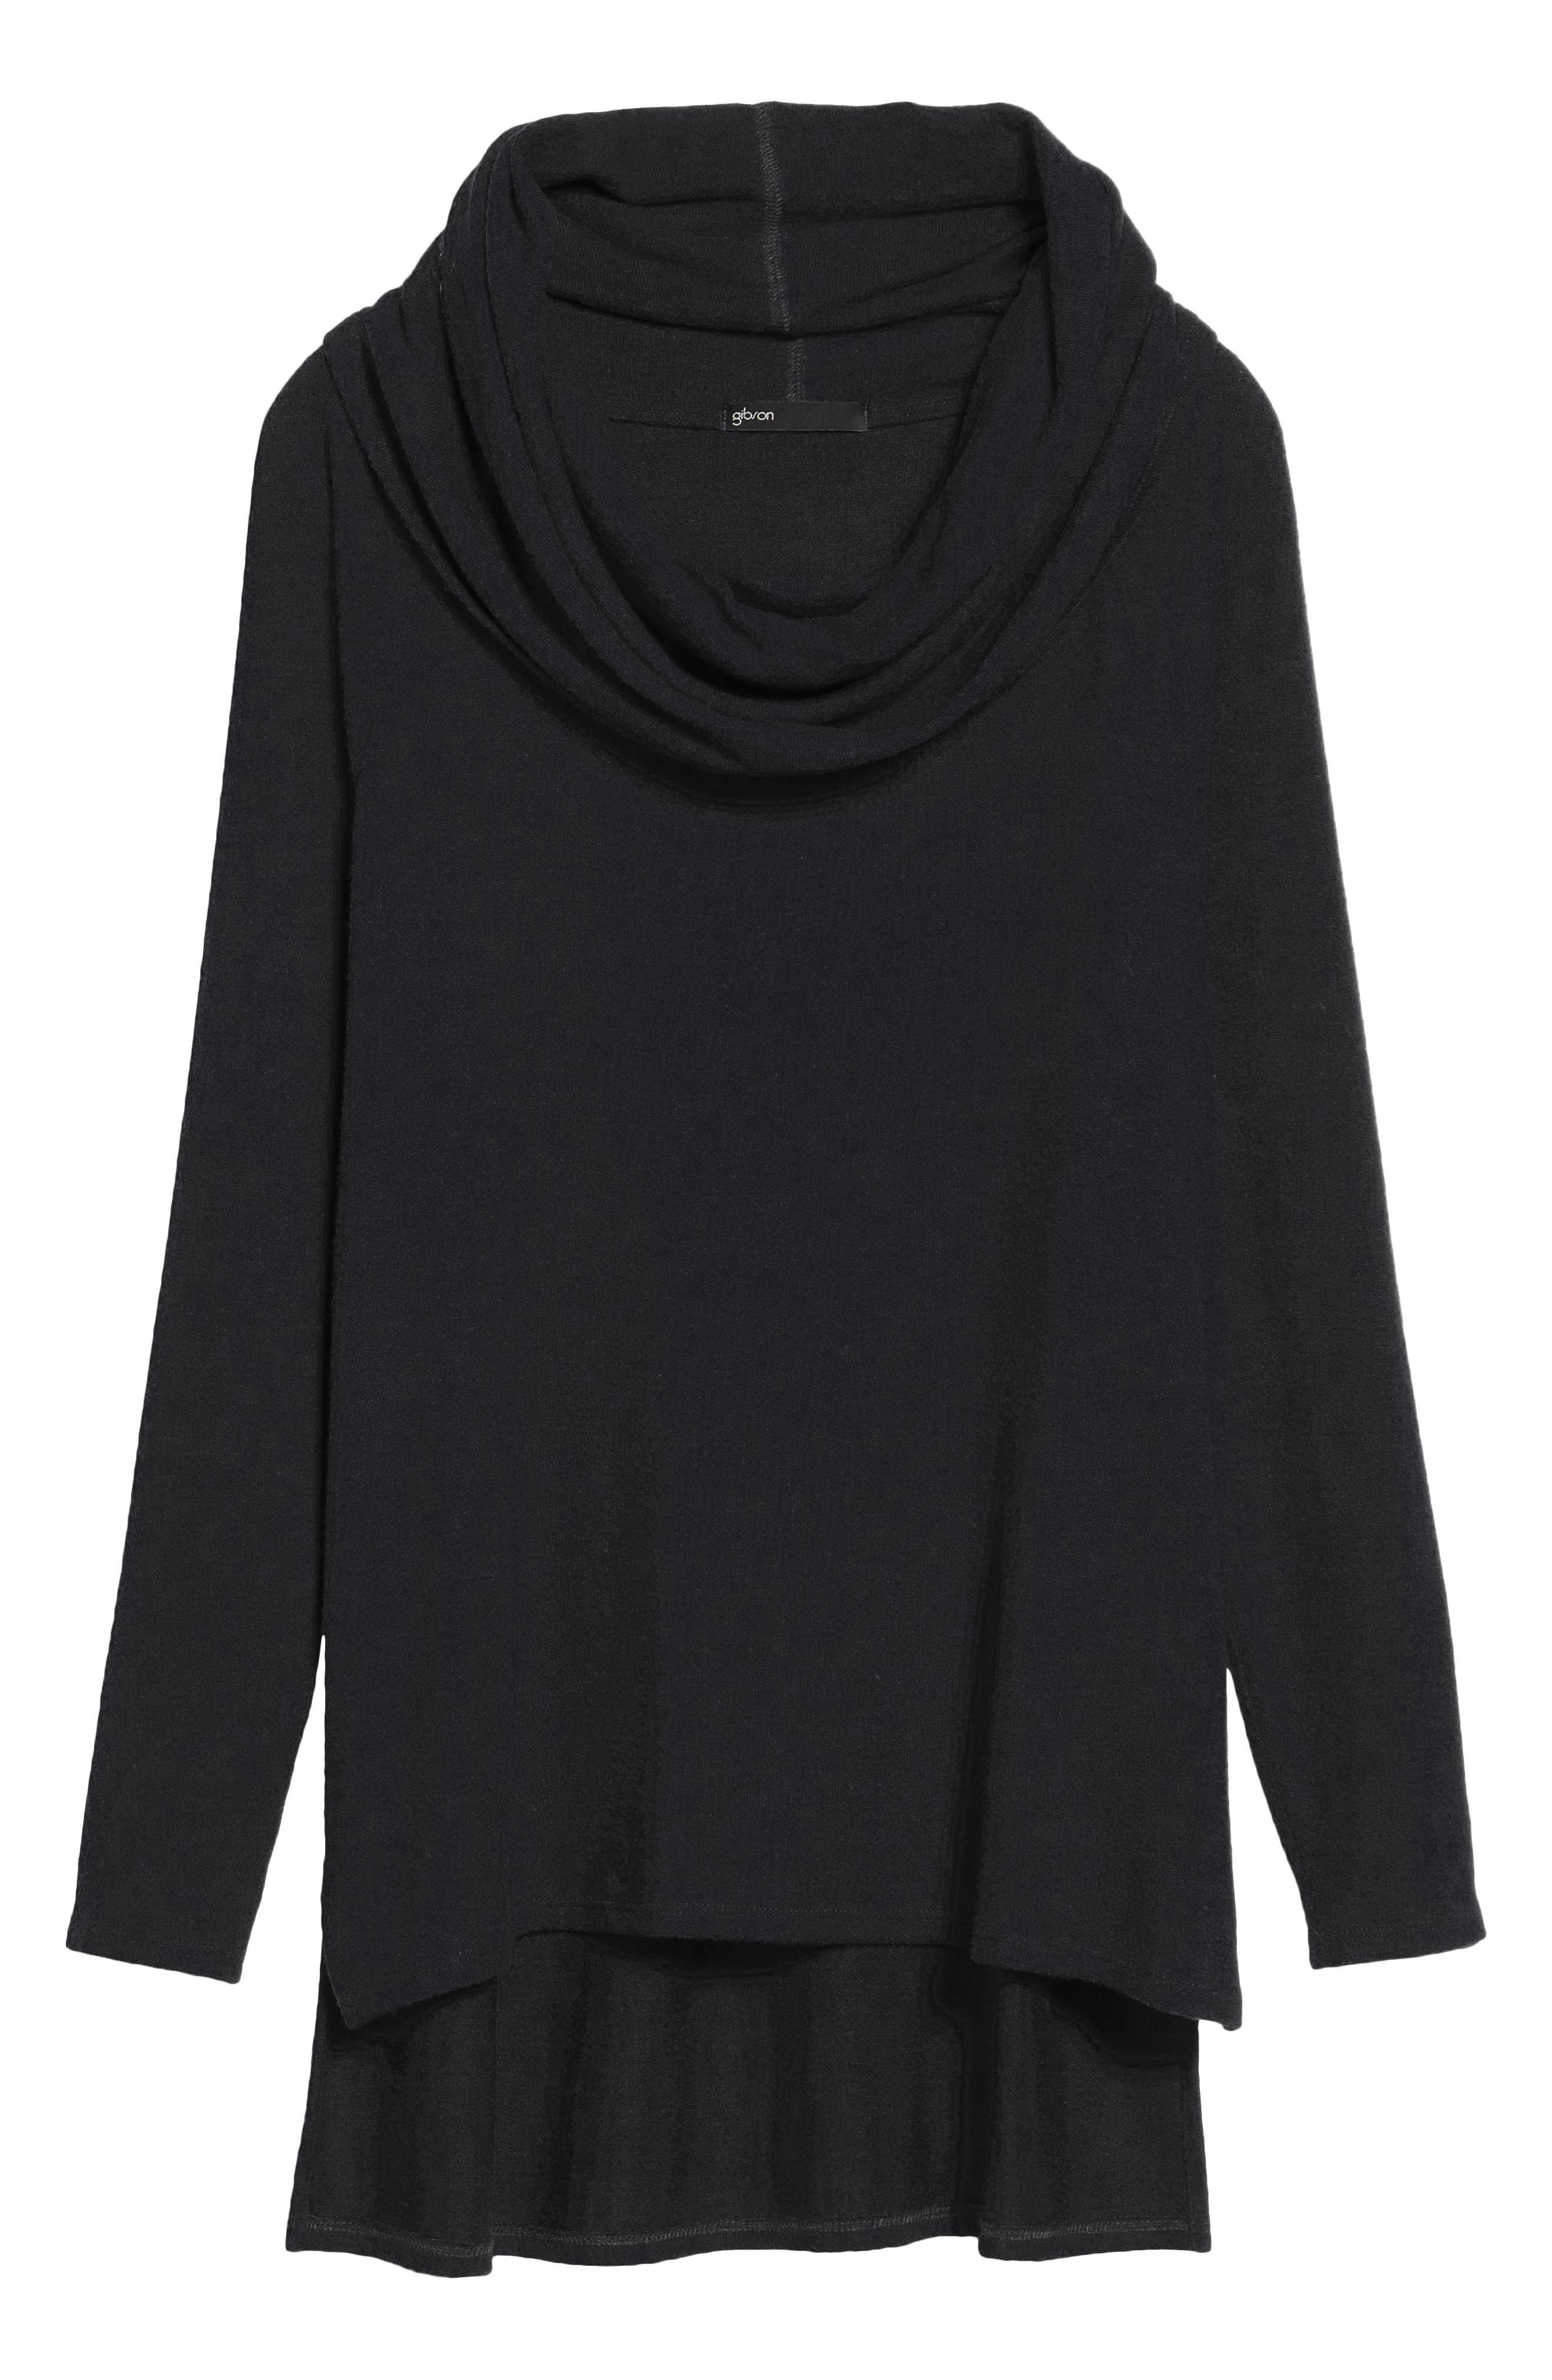 Gibson Convertible Neckline Cozy Fleece Tunic (Regular & Petite)